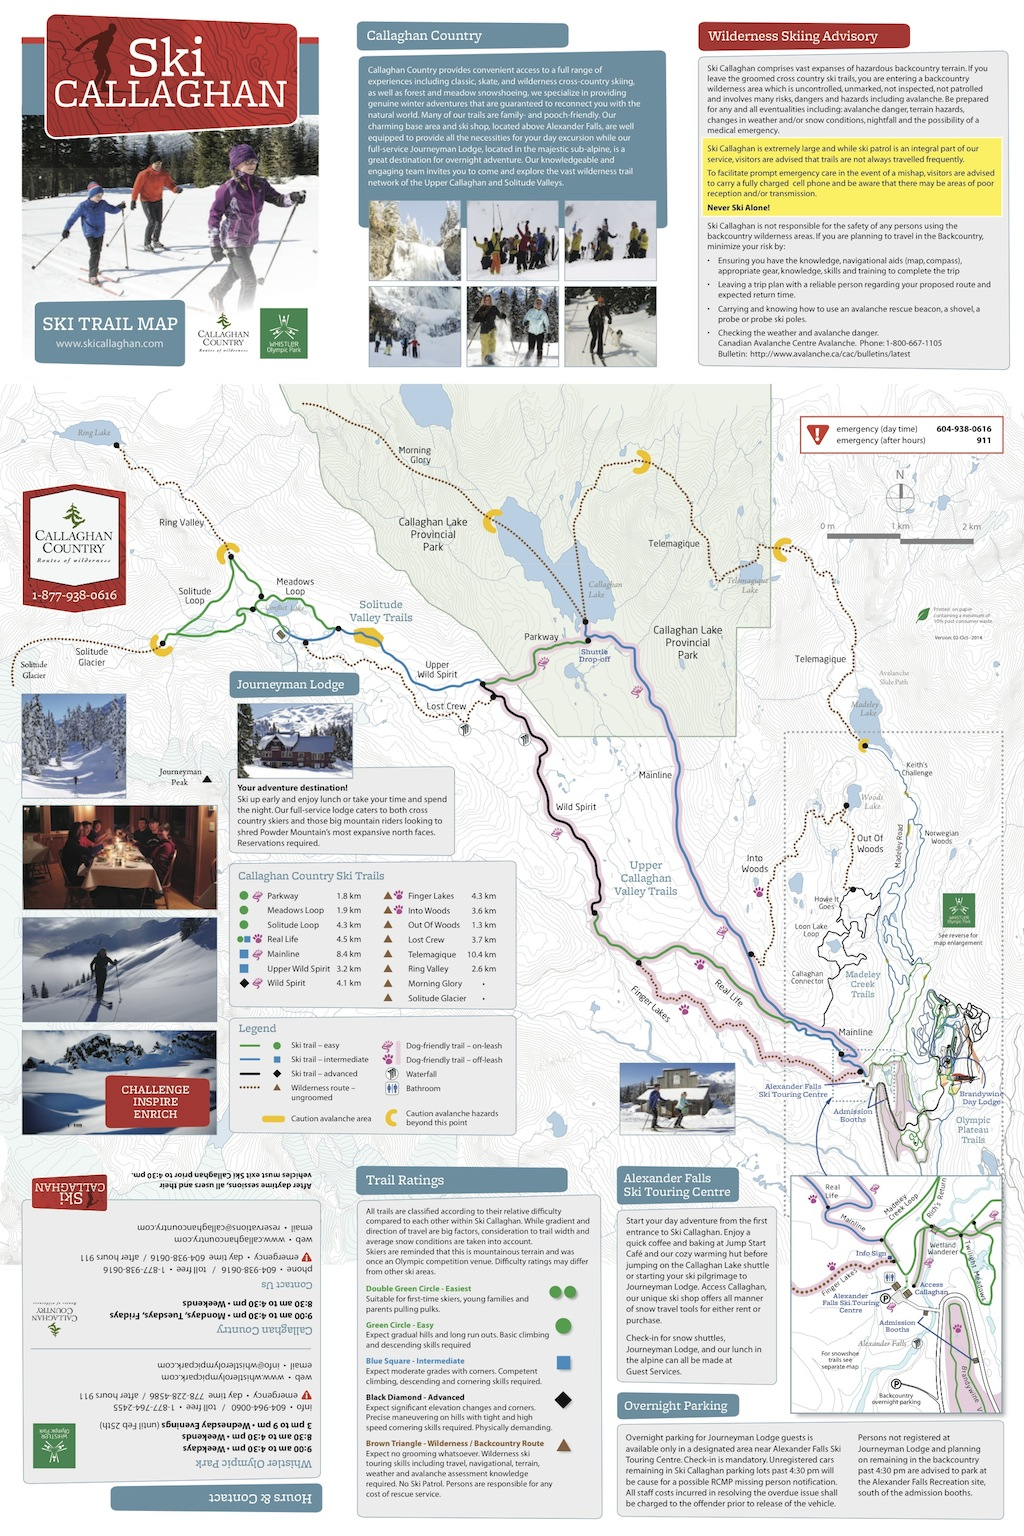 Ski Callaghan Piste / Trail Map